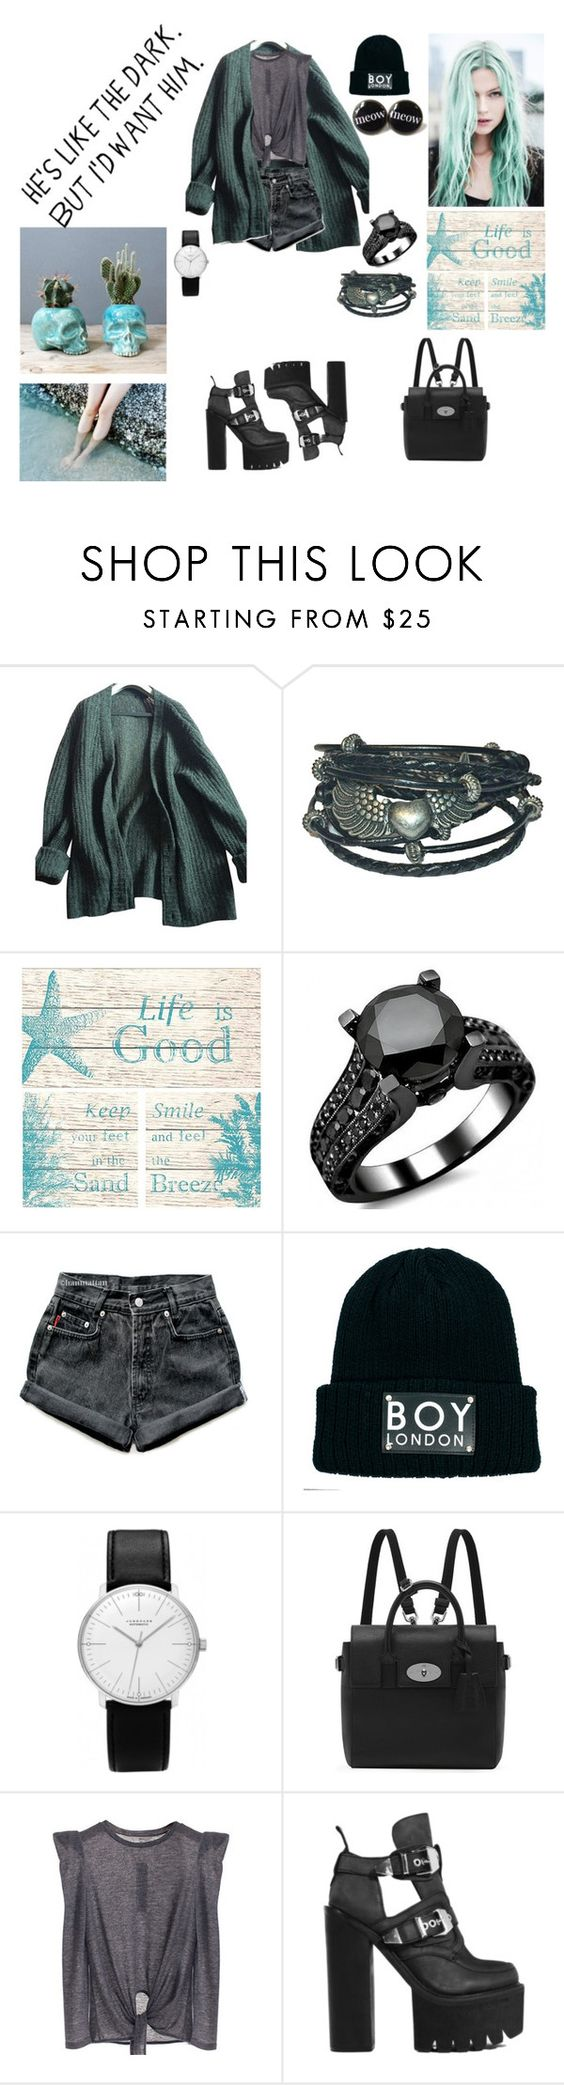 """he's the dark"" by akemi-kiryu ❤ liked on Polyvore featuring Prada, Universal Lighting and Decor, Levi's, BOY London, Junghans, Mulberry, Jeffrey Campbell and bedroom"